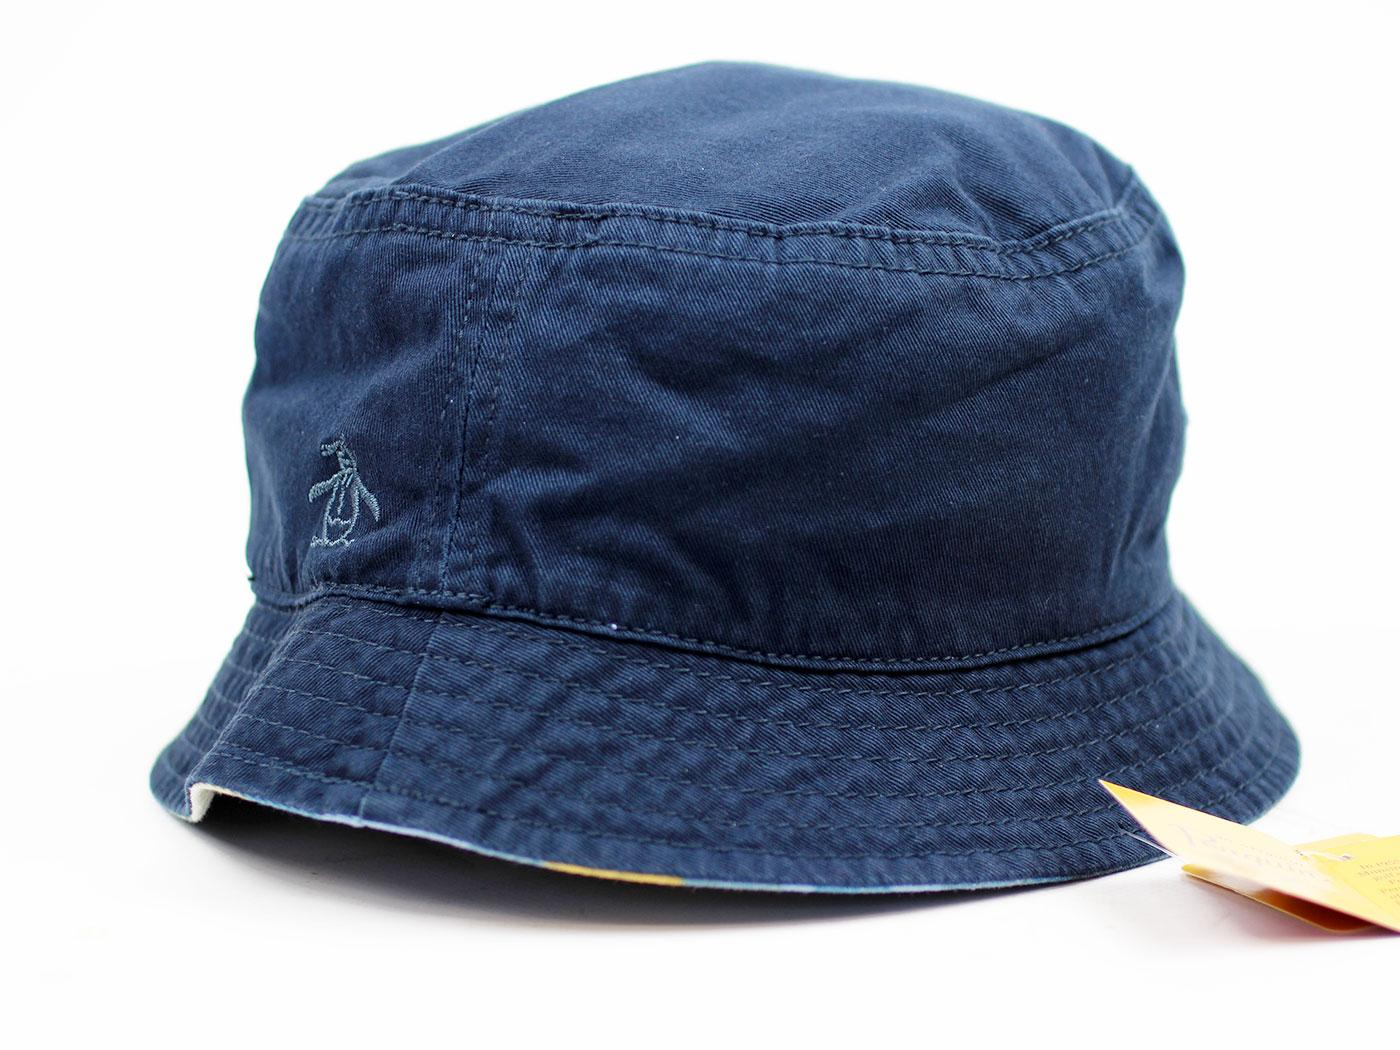 ORIGINAL PENGUIN Retro Indie Britpop Bucket Hat Dress Blues 725f57538d0